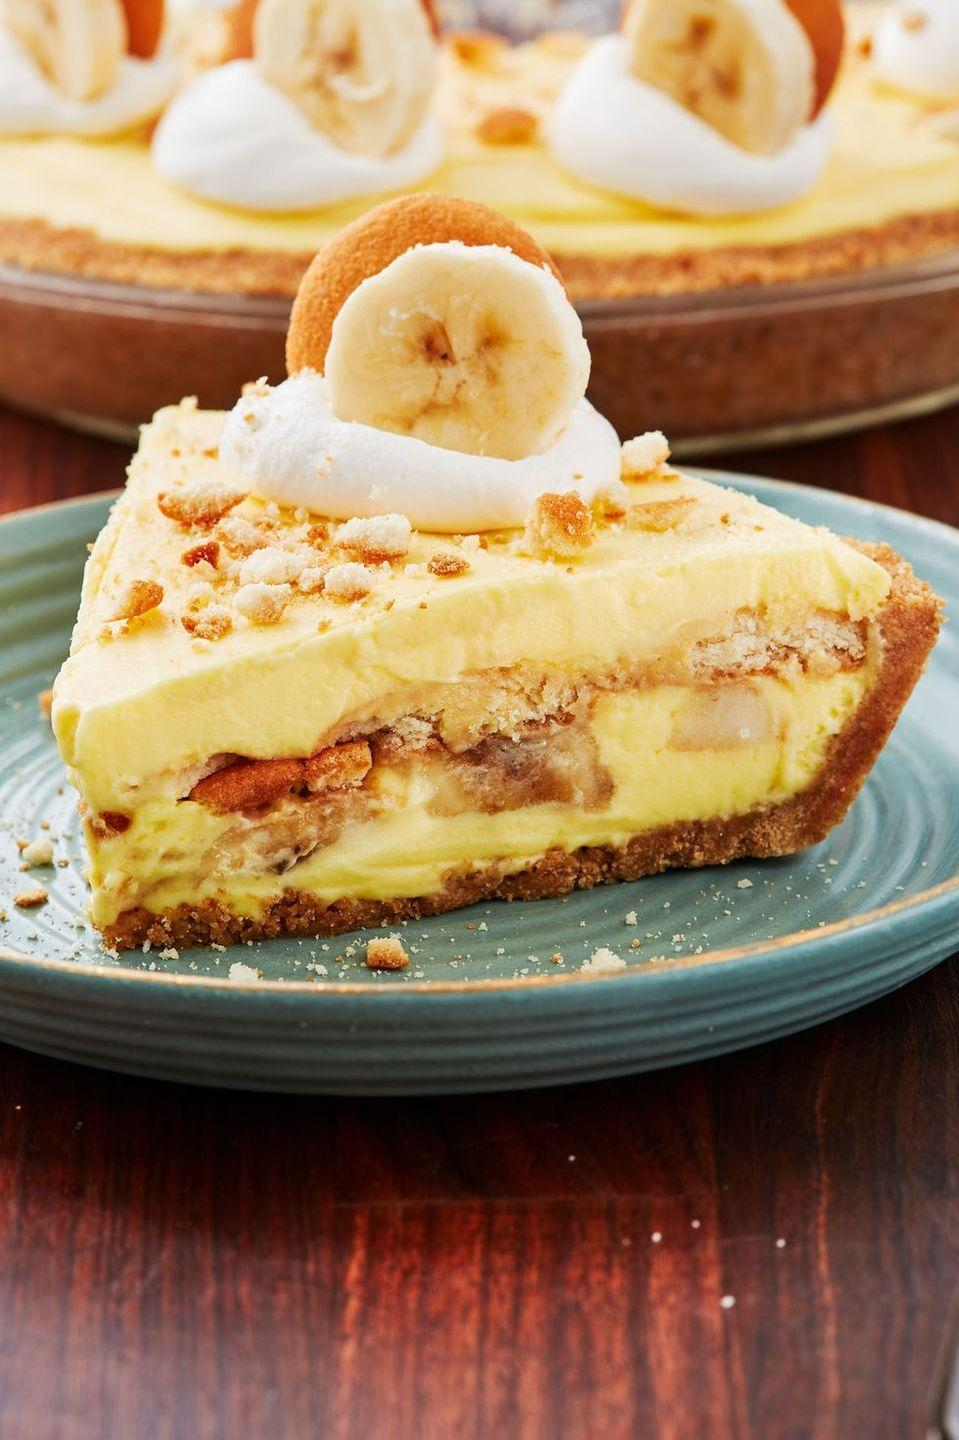 """<p>Banana pudding + cheesecake = the best dessert mashup EVER.</p><p>Get the recipe <a href=""""https://www.delish.com/cooking/recipe-ideas/recipes/a52780/banana-pudding-cheesecake-recipe/"""" rel=""""nofollow noopener"""" target=""""_blank"""" data-ylk=""""slk:here"""" class=""""link rapid-noclick-resp"""">here</a>.</p>"""